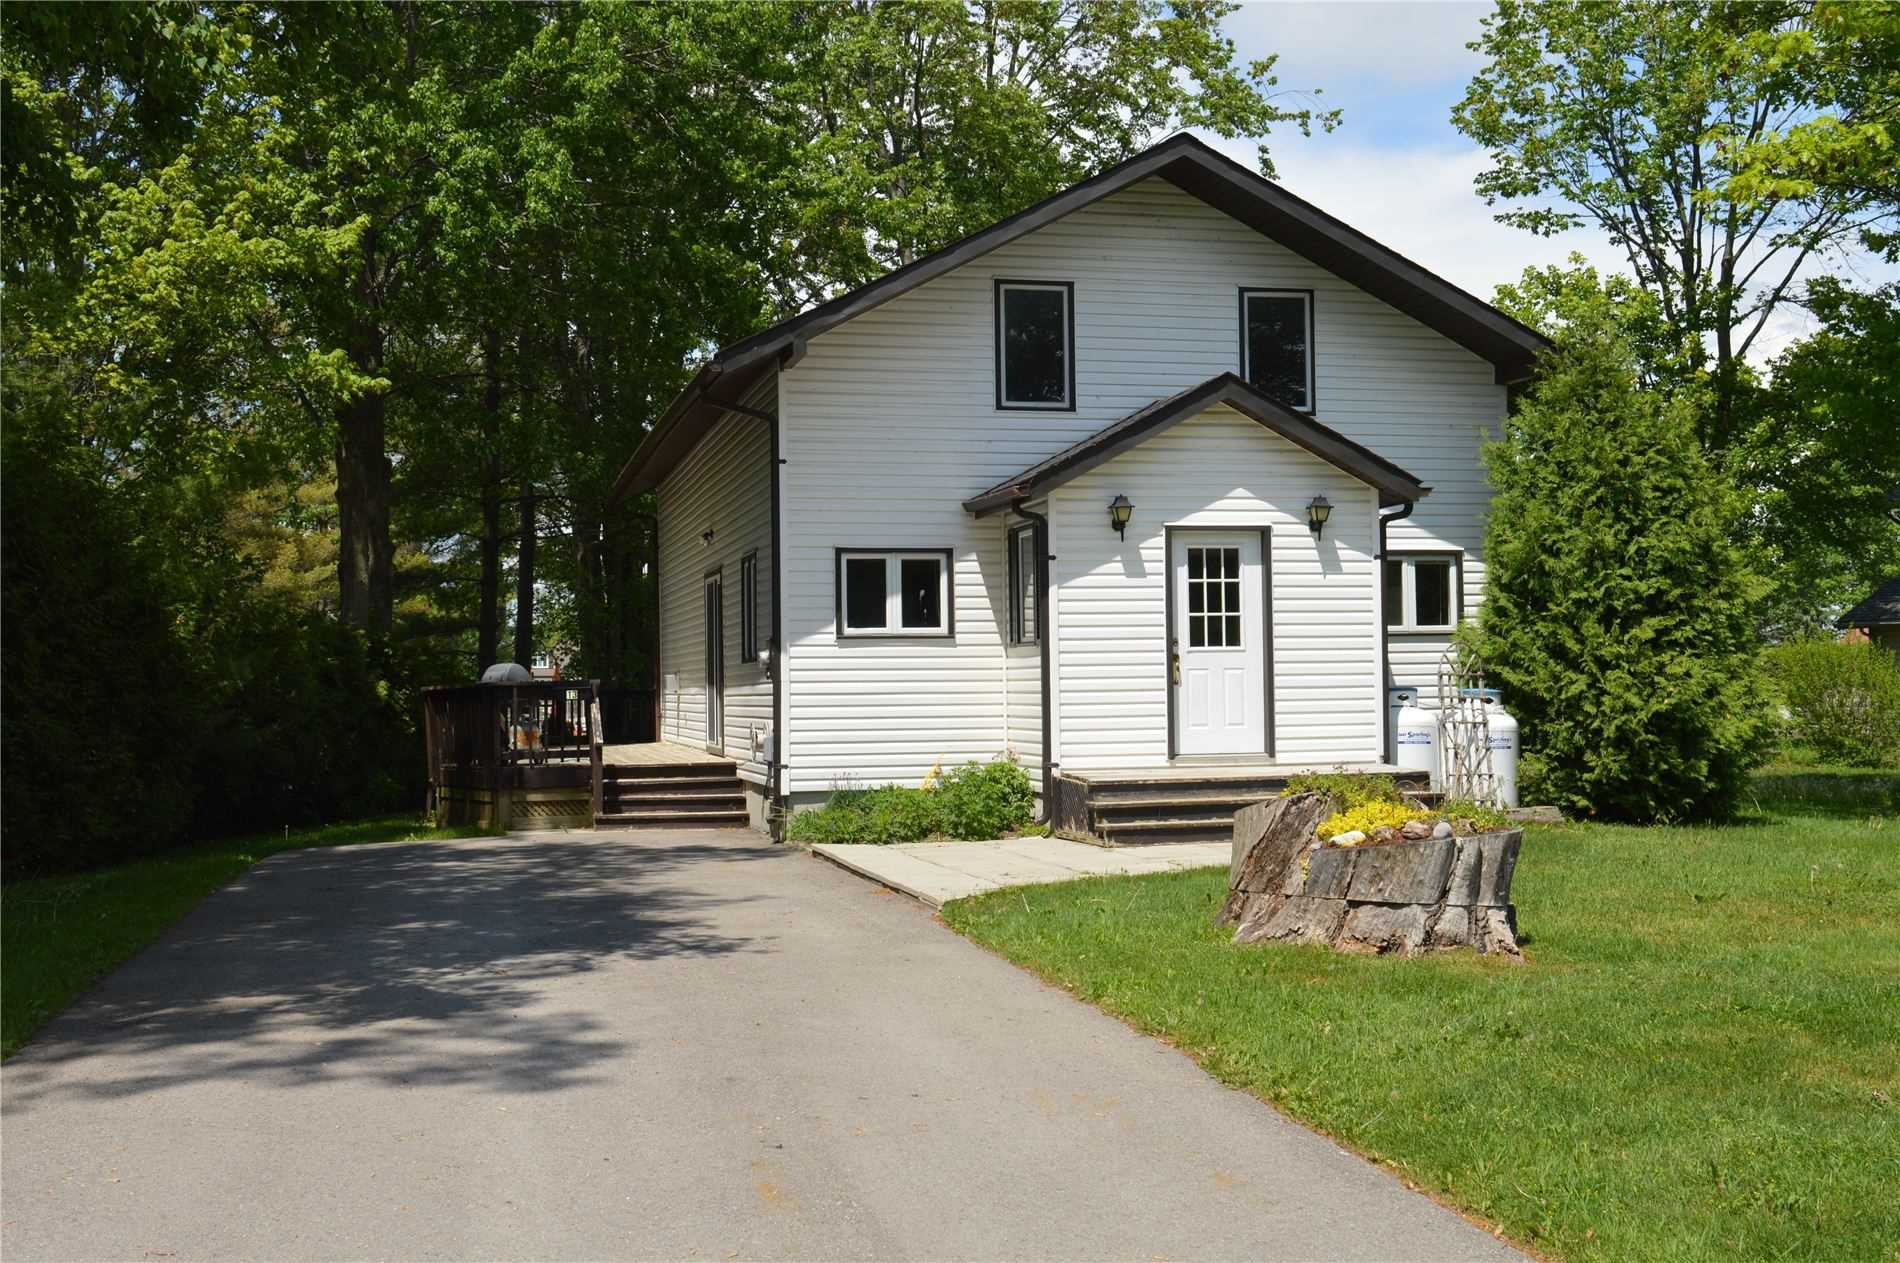 Main Photo: 13 Old Indian Trail in Ramara: Brechin House (2-Storey) for lease : MLS®# S4563298